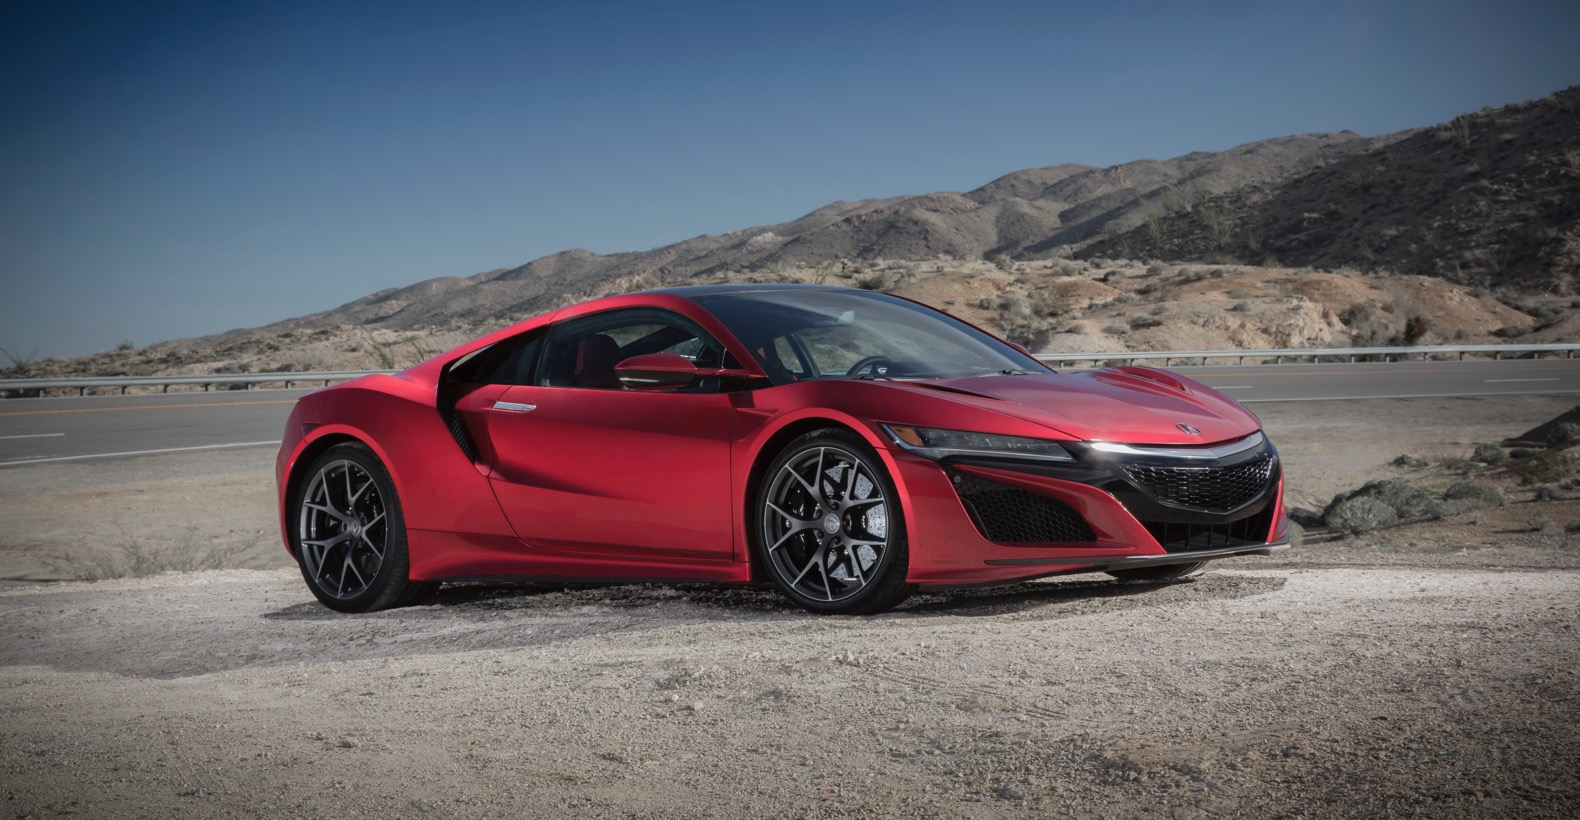 92 The Best 2020 Acura Nsx Type R Configurations